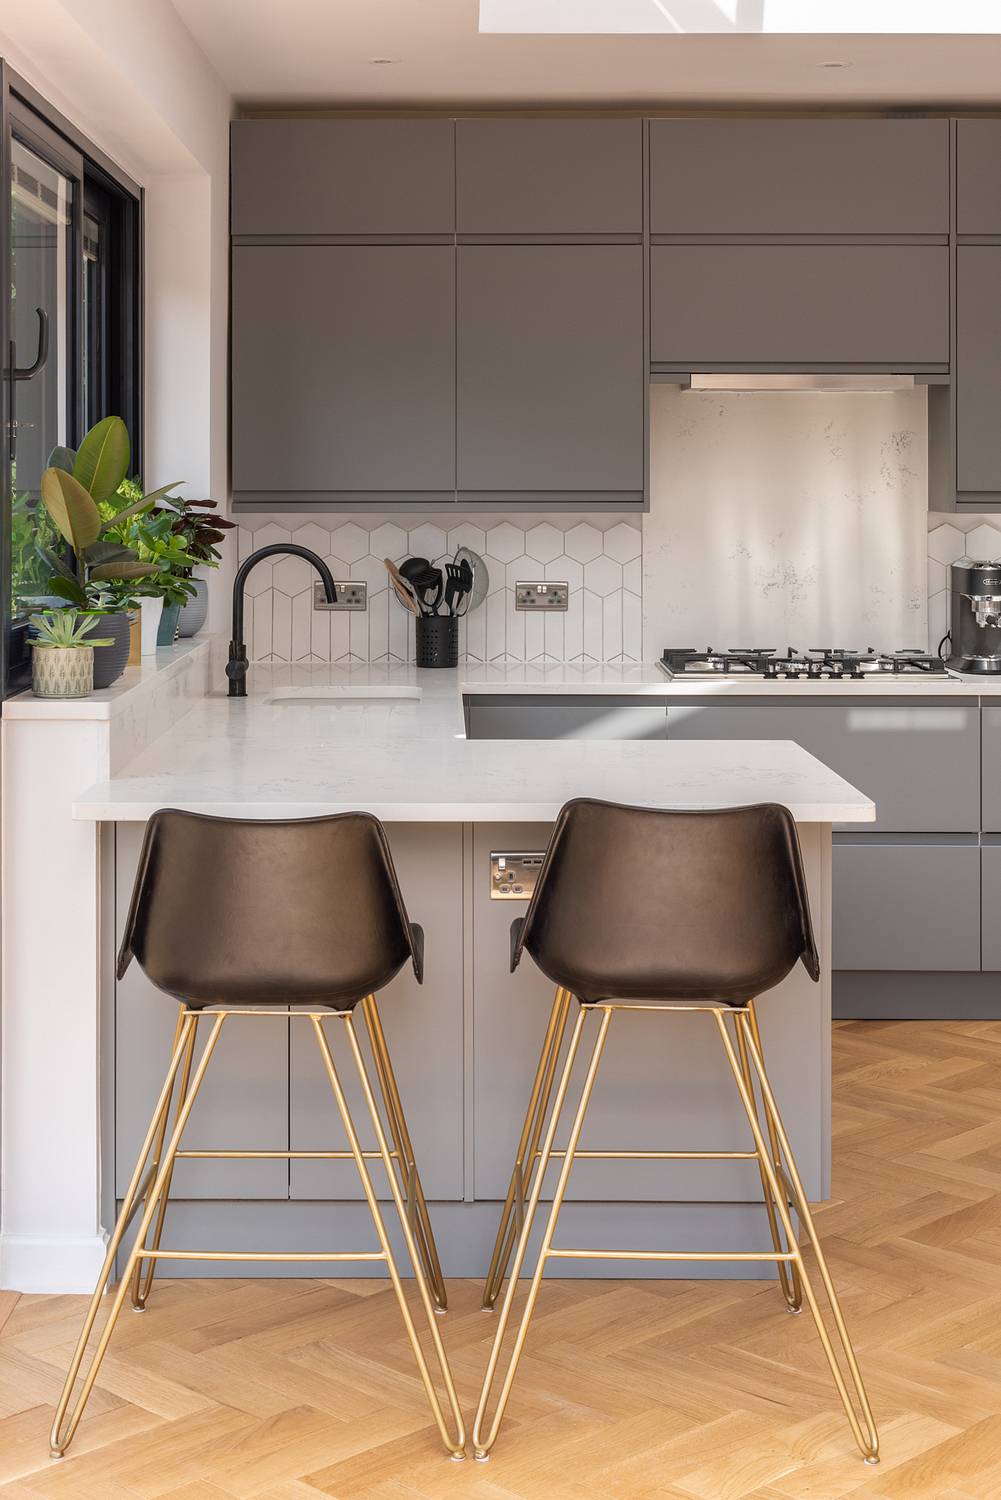 Kitchen detail with bespoke bar stools, London